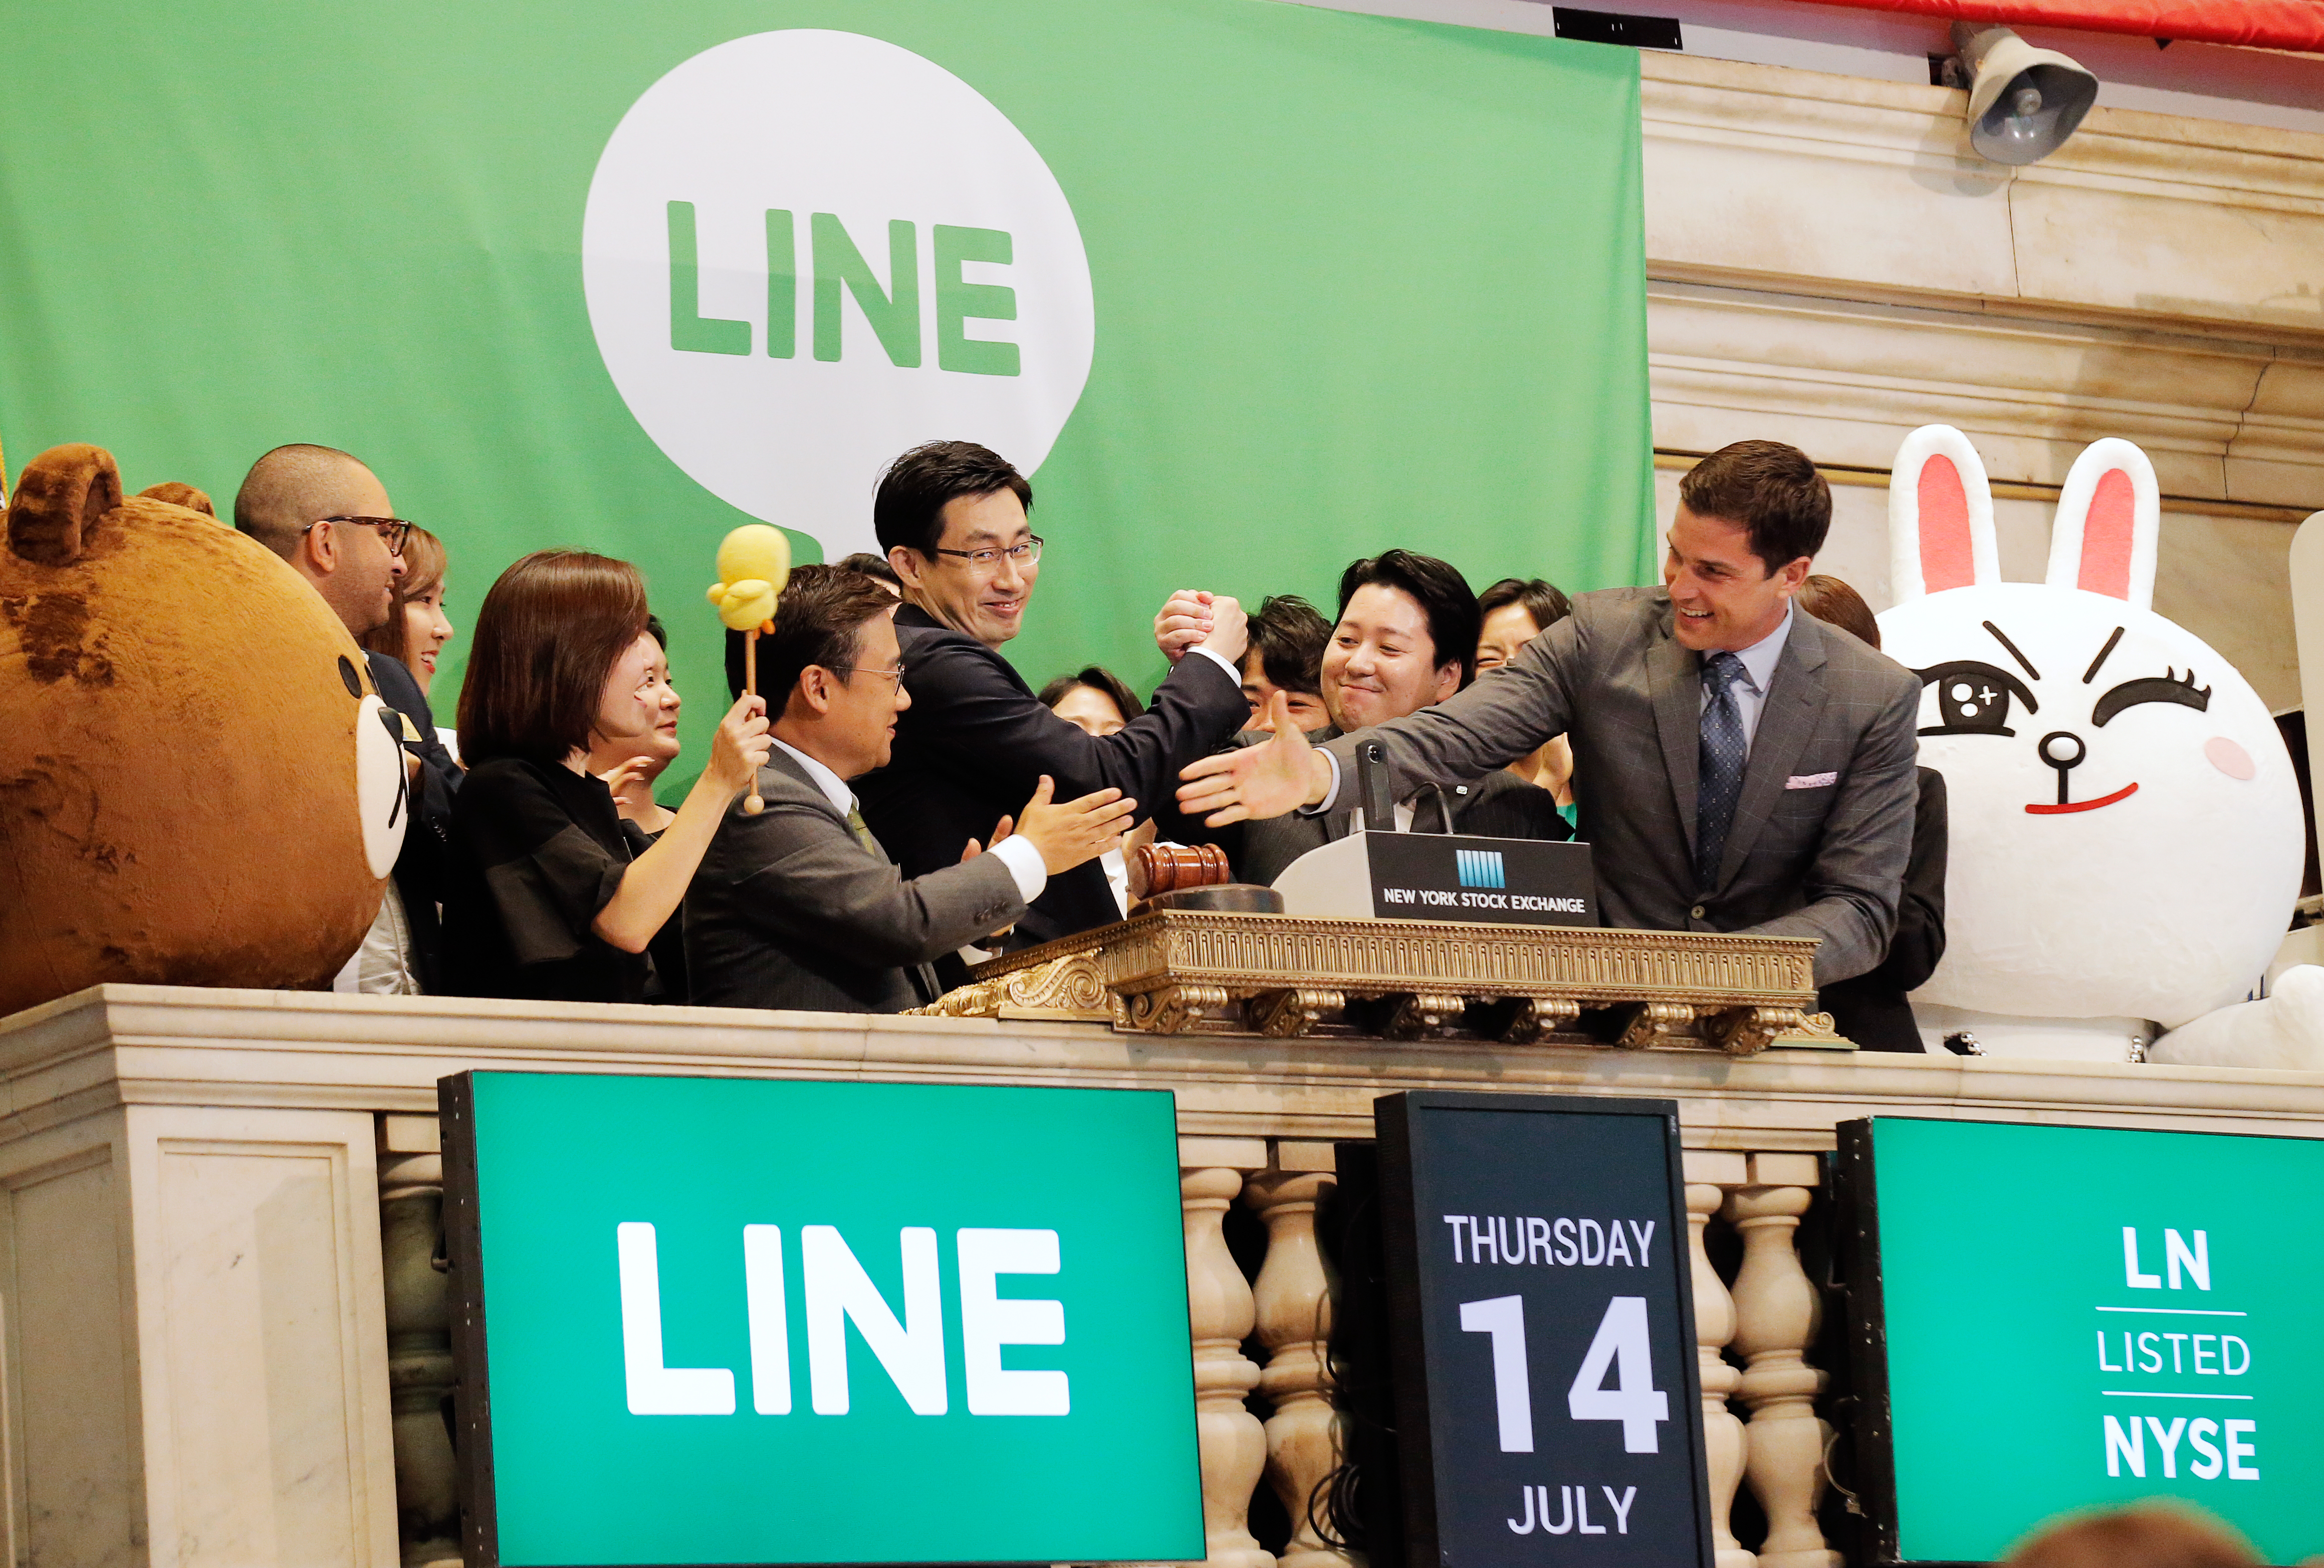 NYSE president Tom Farley congratulates Japan's Line Corp. CFO In-Joon Hwang and Chief Global Officer Joongho Shin and Chief Strategy and Marketing Officer Jun Masuda during the company's IPO on the floor of the New York Stock Exchange